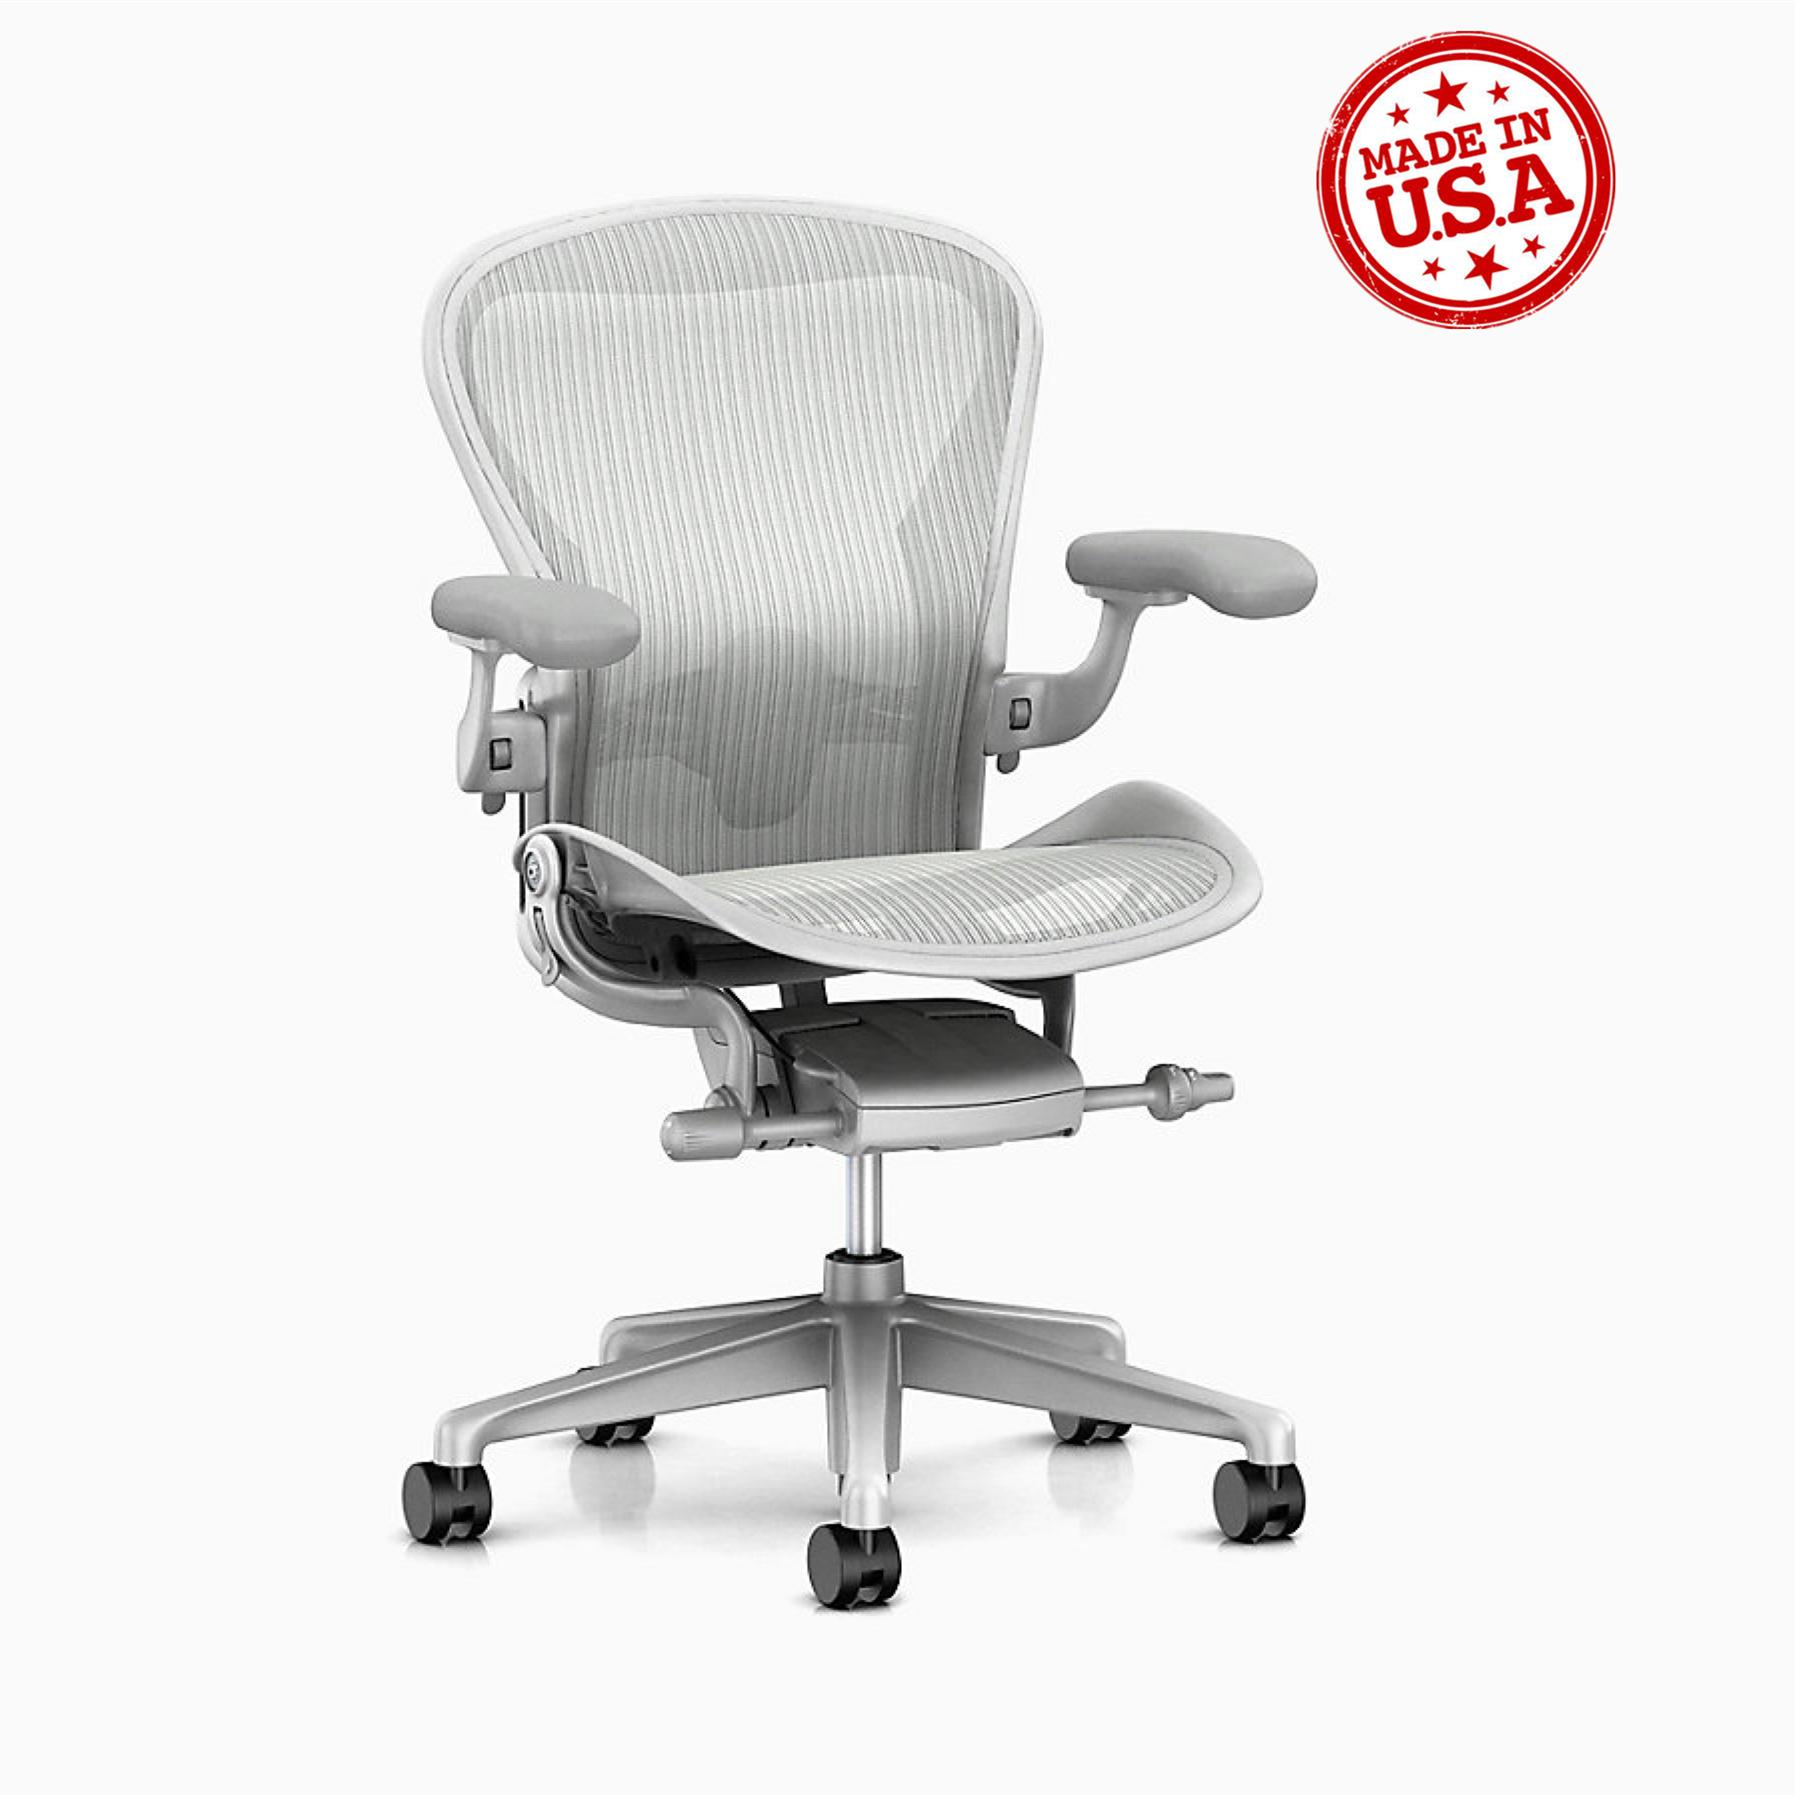 Herman Miller Aeron Remastered Lumbar Support